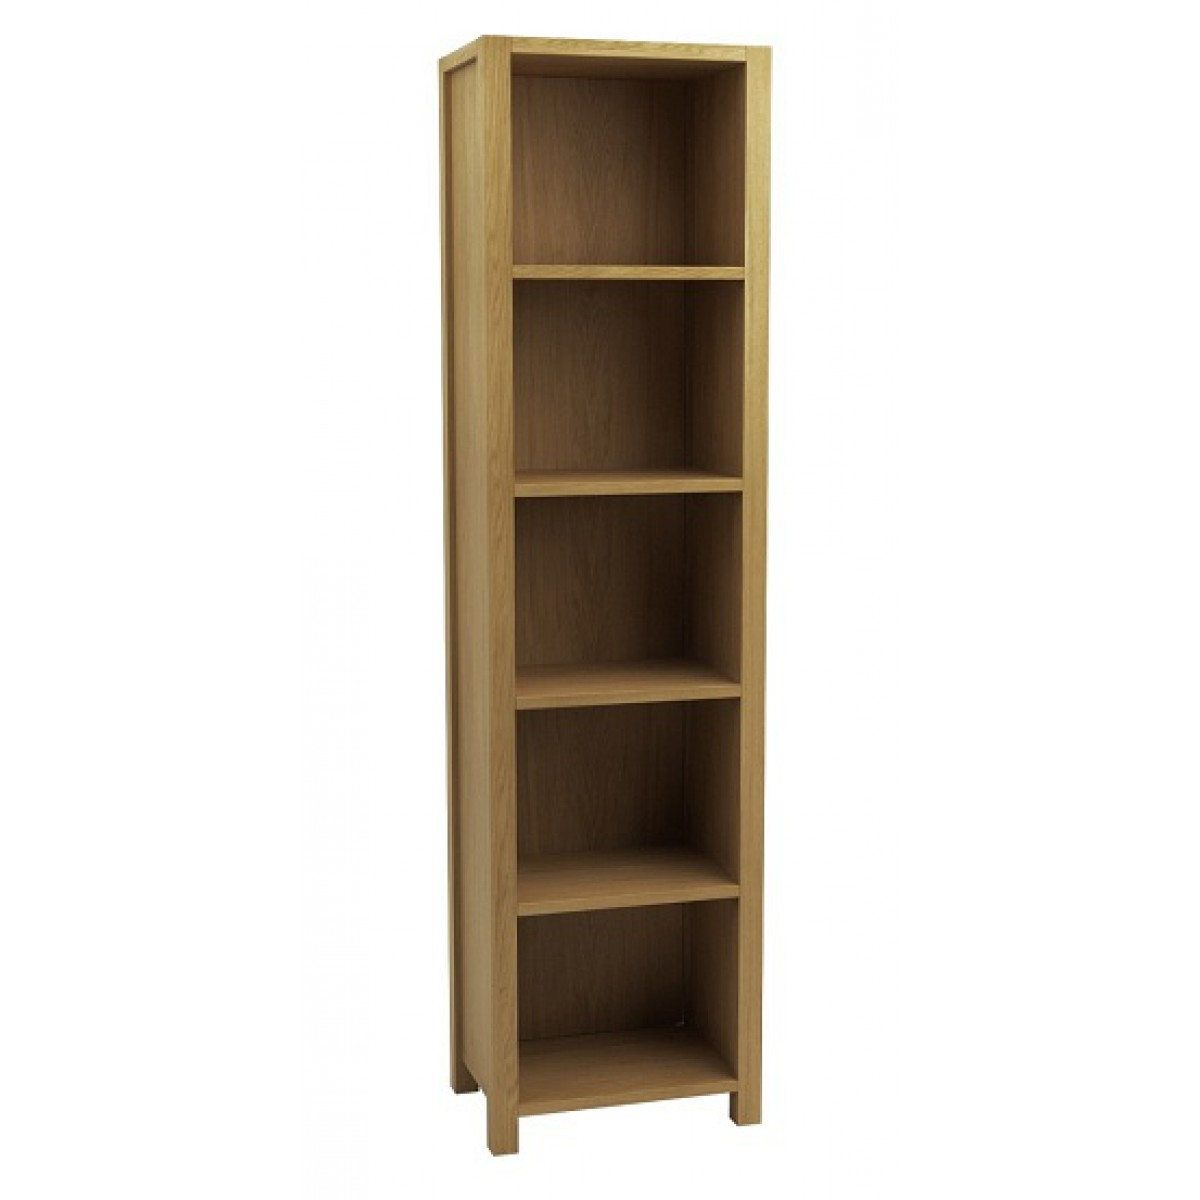 tall storage shelves sims open shelving unit 27066